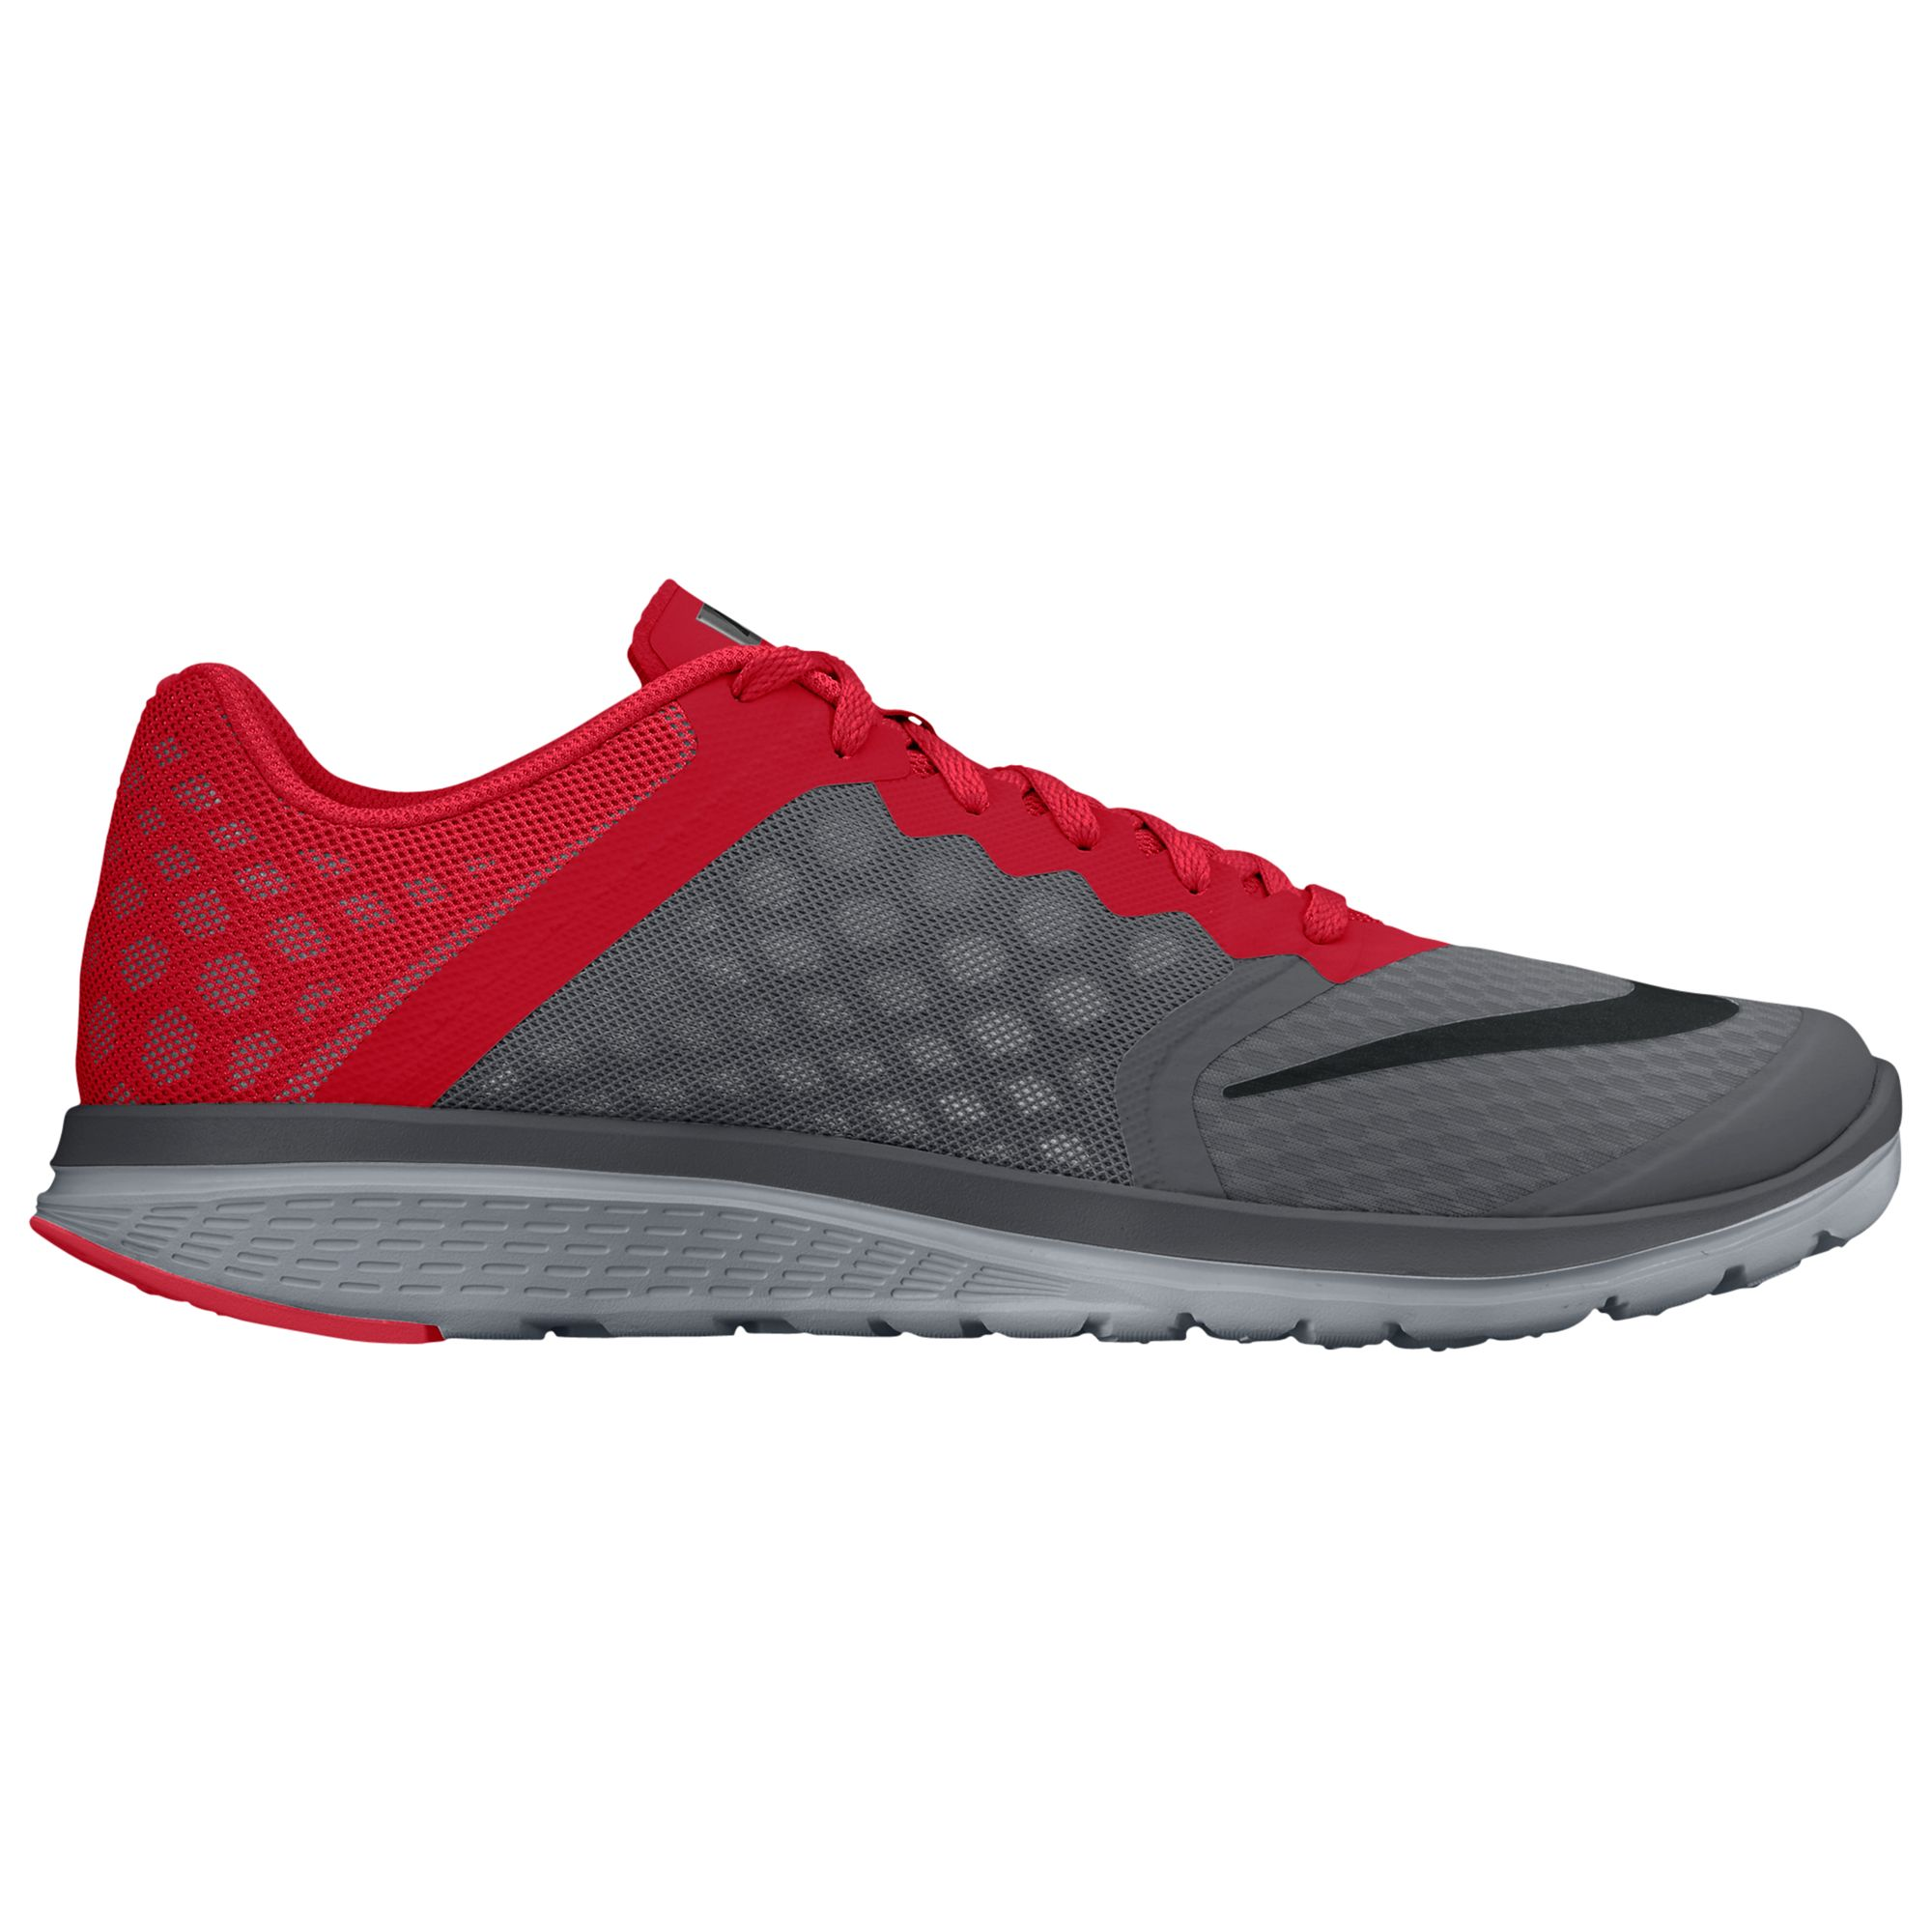 finest selection 2ea02 ce2b0 Nike FS Lite Run 3 Men s Running Shoes, Grey Red at John Lewis   Partners